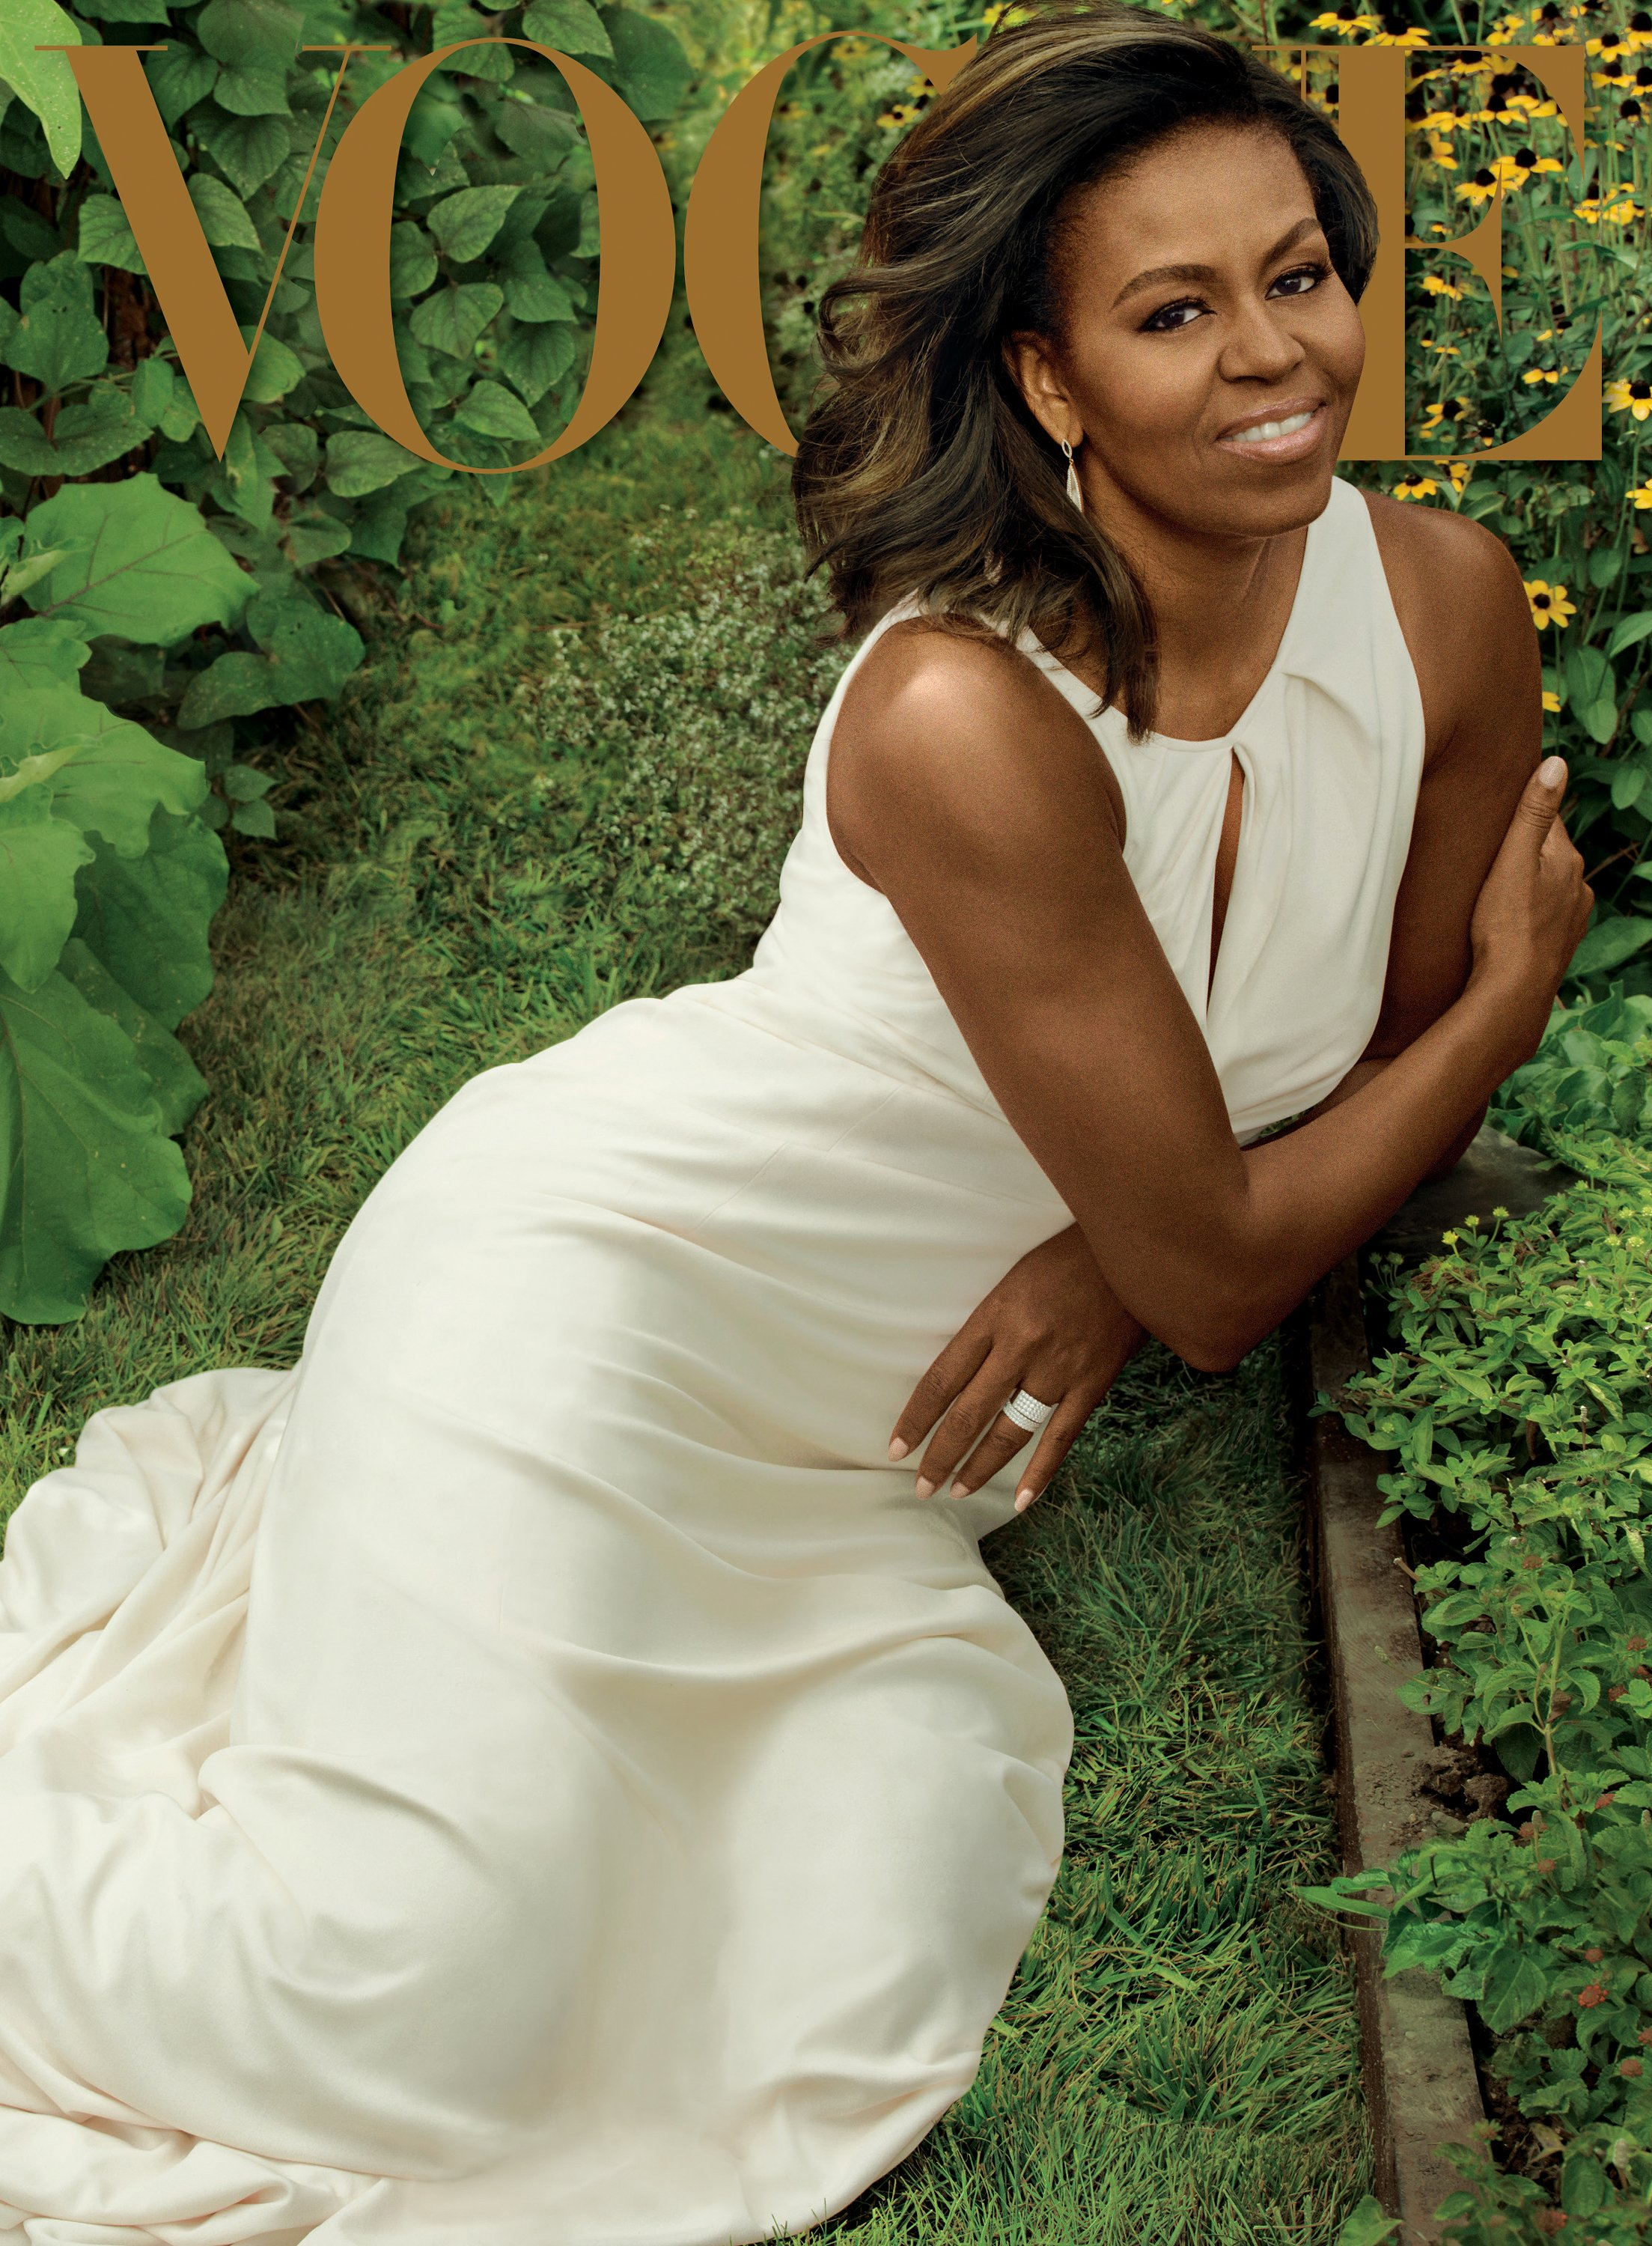 Michelle Obama Opens Up On Eight Memorable Years In The